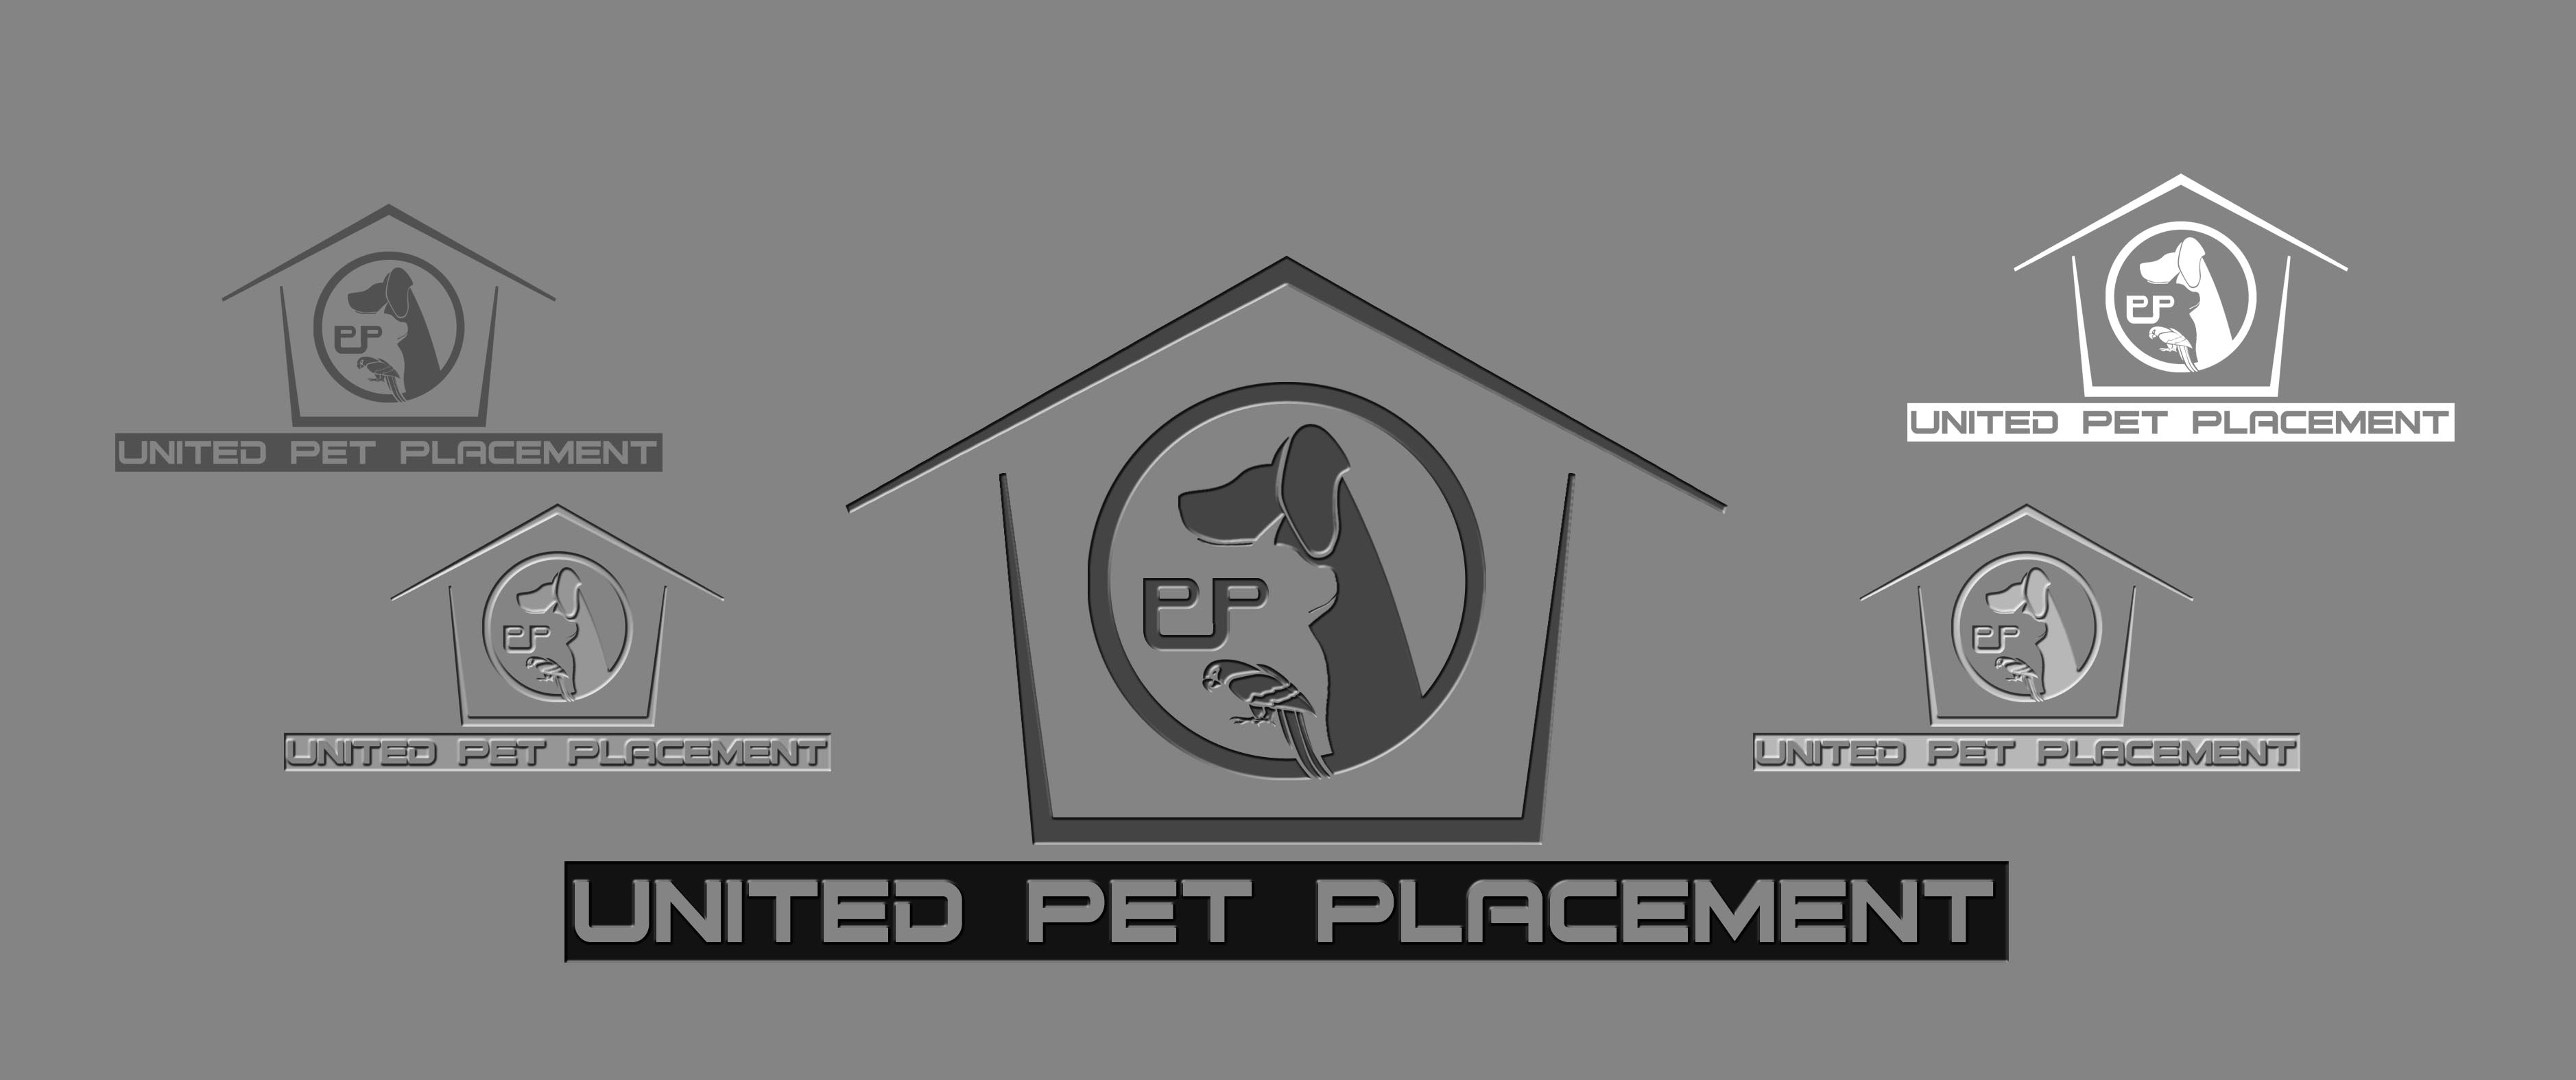 Logo Design by Cesar III Sotto - Entry No. 76 in the Logo Design Contest Artistic Logo Design for united pet placement.